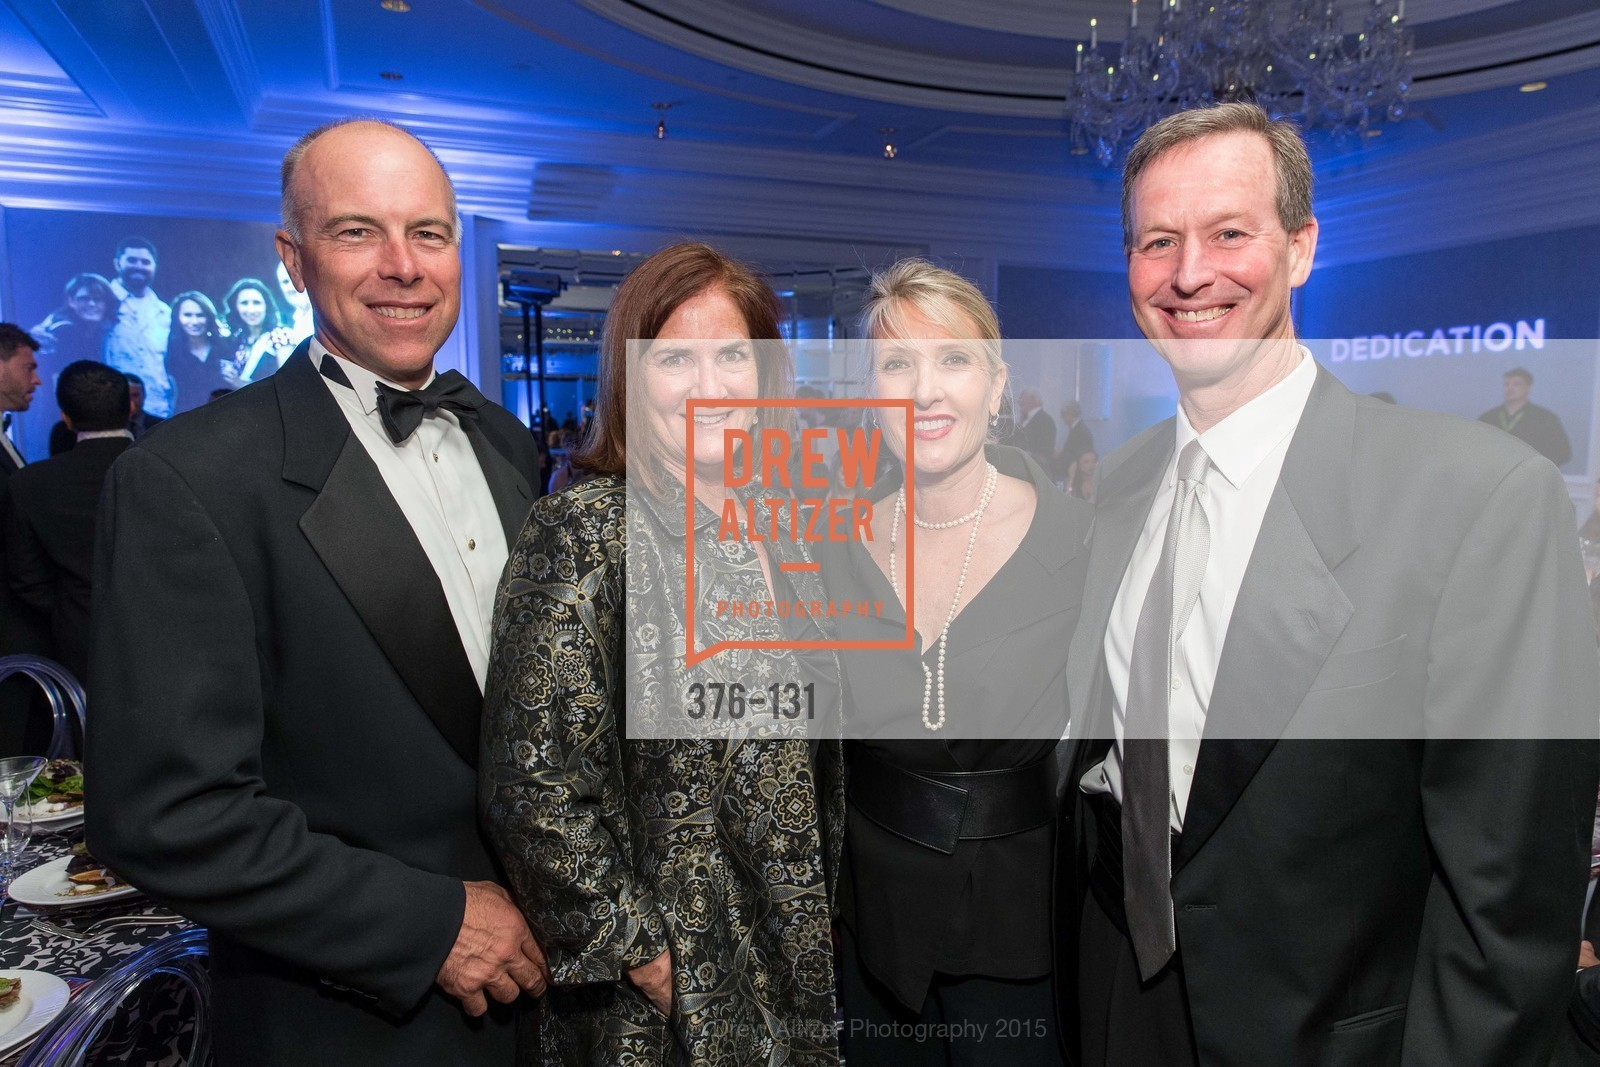 Russ Silvestri, Steph Silvestri, Stephanie Riehle, Senator Paul Riehle, JUVENILE DIABETES RESEARCH FOUNDATION  Hope Gala, The Ritz-Carlton, May 29th, 2015,Drew Altizer, Drew Altizer Photography, full-service agency, private events, San Francisco photographer, photographer california